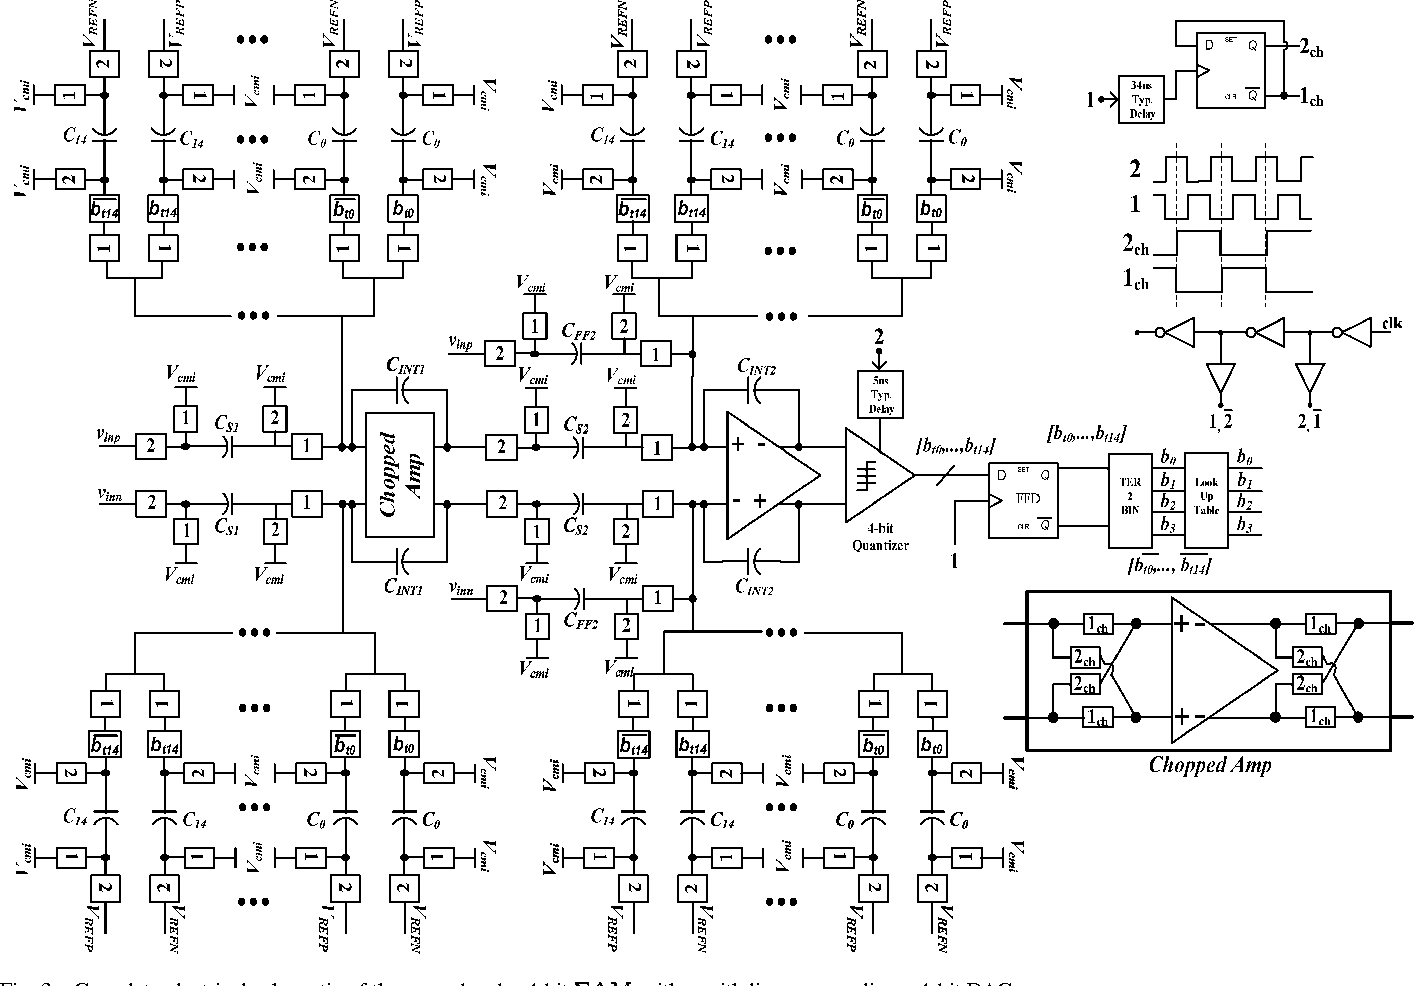 Non Linear Wiring Schematic Free Diagram For You Delta Figure 3 From A 1 2 V 165 Spl Mu W 0 29 Mm2 Multibit Sigma Rh Semanticscholar Org Boat Schematics Plc